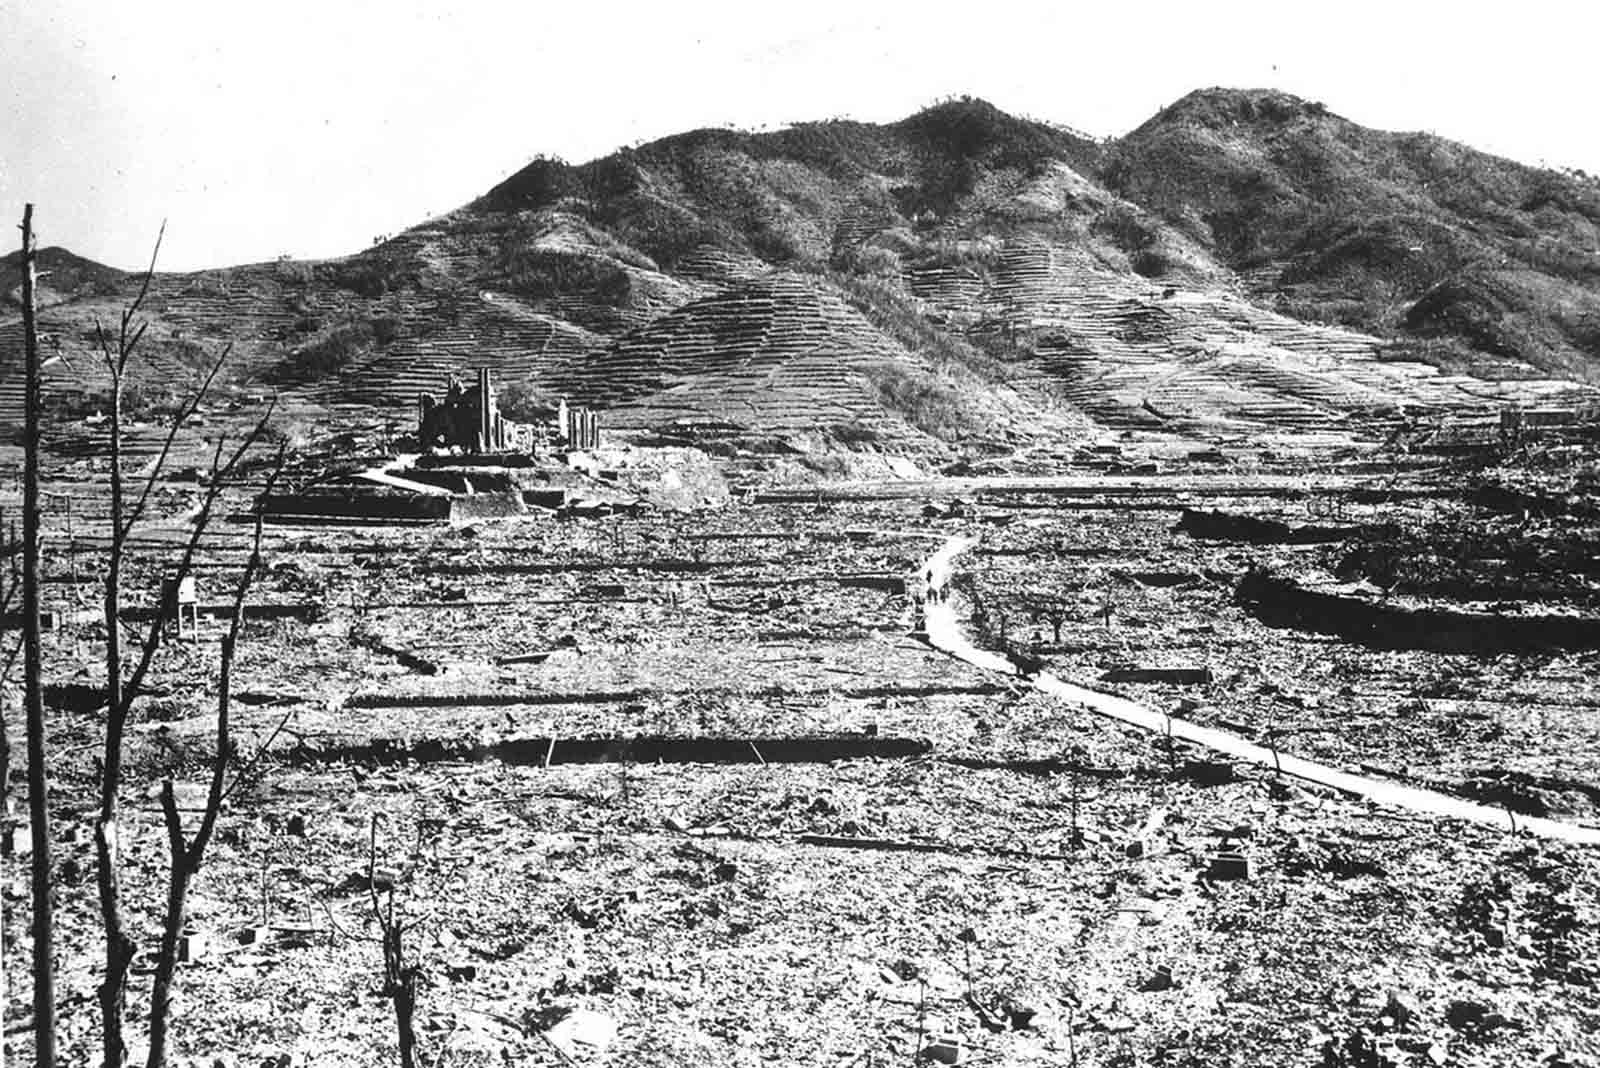 The only recognizable structure remaining is a ruined Roman Catholic Cathedral in background on a destroyed hill, in Nagasaki, Japan in 1945.